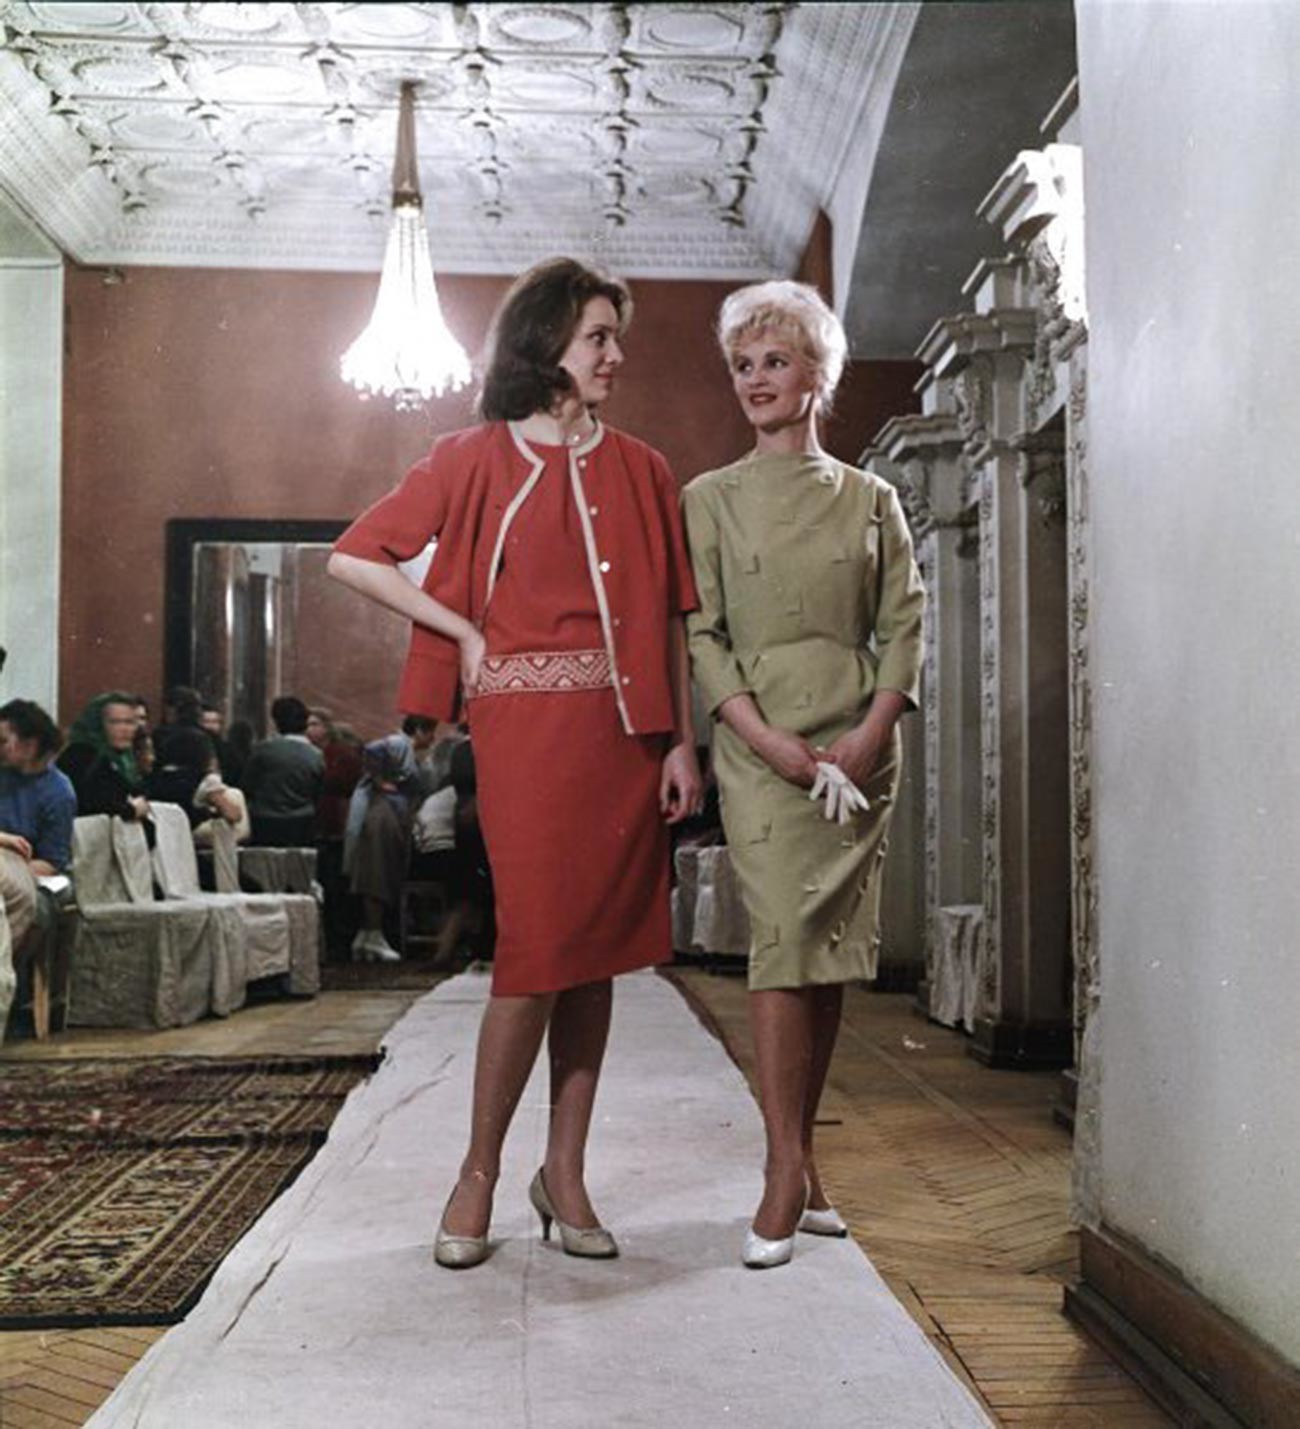 Showing a women's clothing collection, 1955-1963.